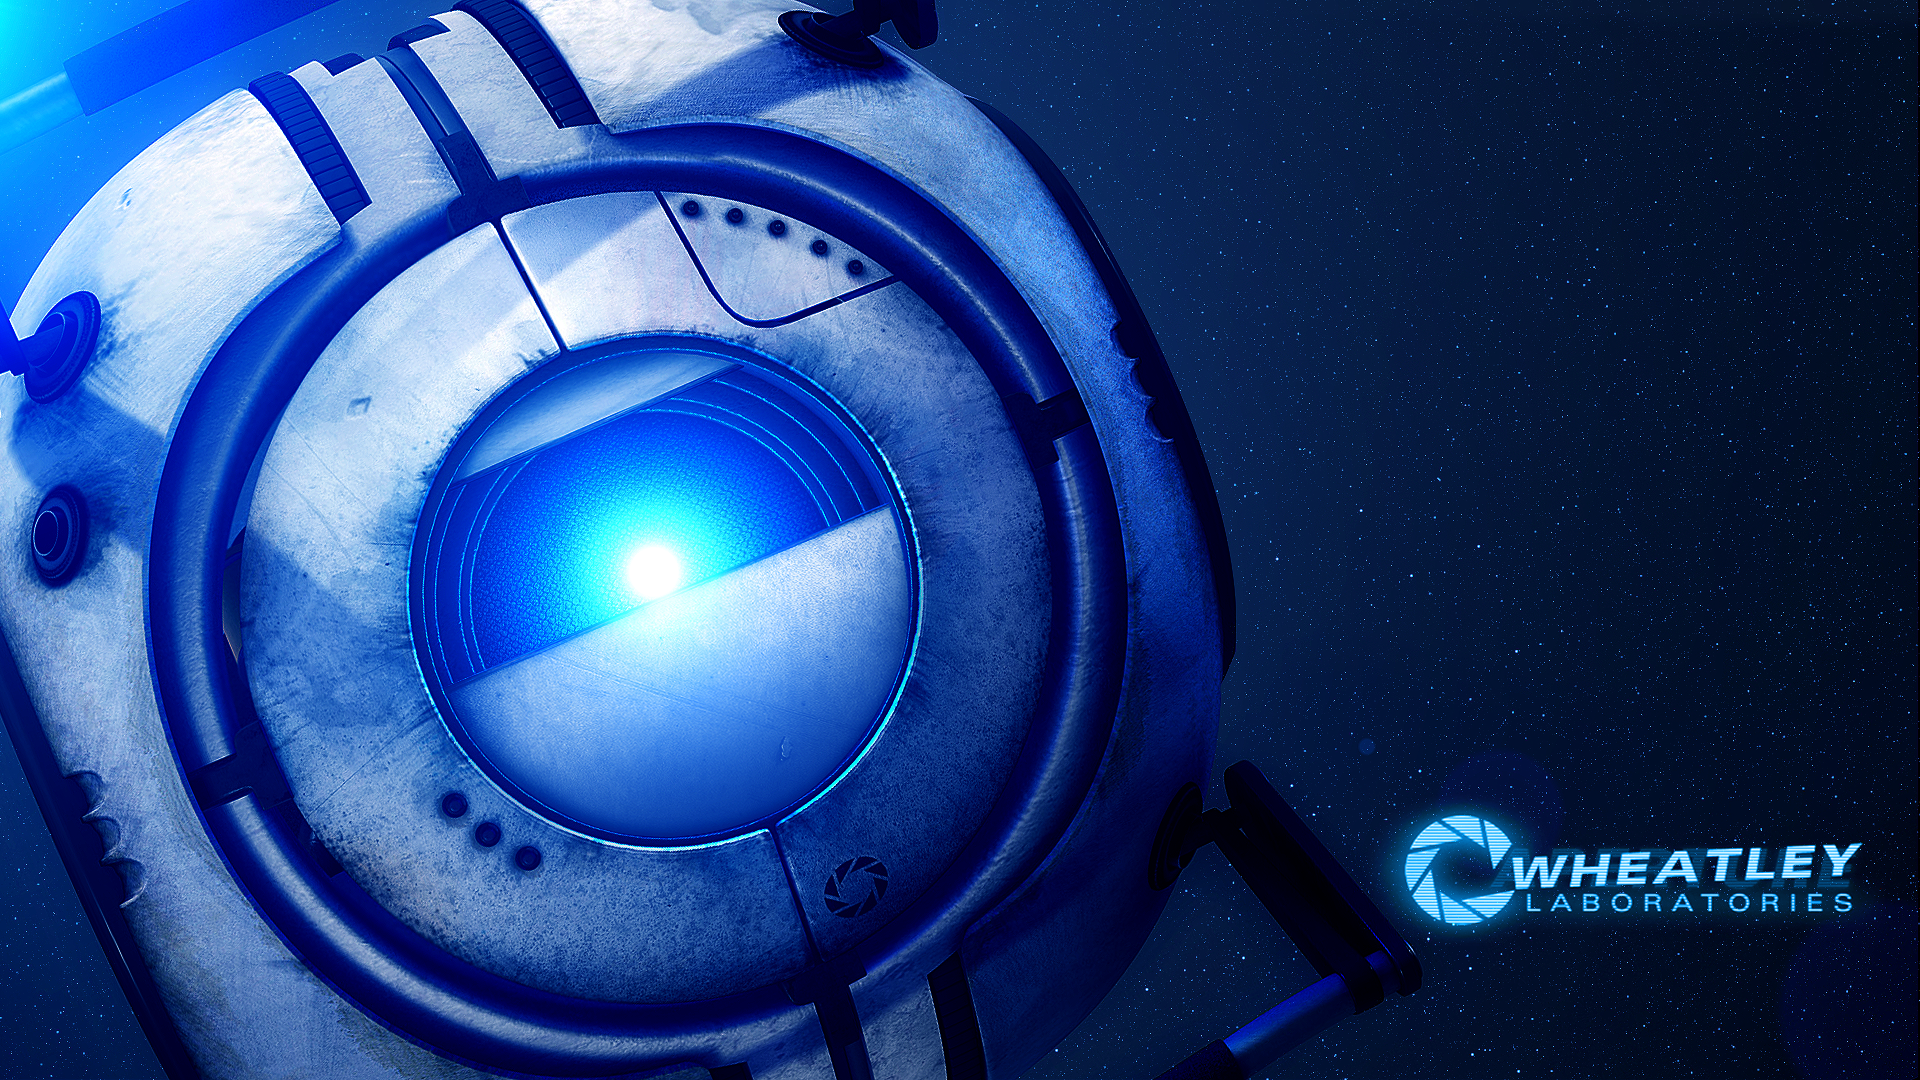 Oh Wheatley I Forgive You by iNicKeoN